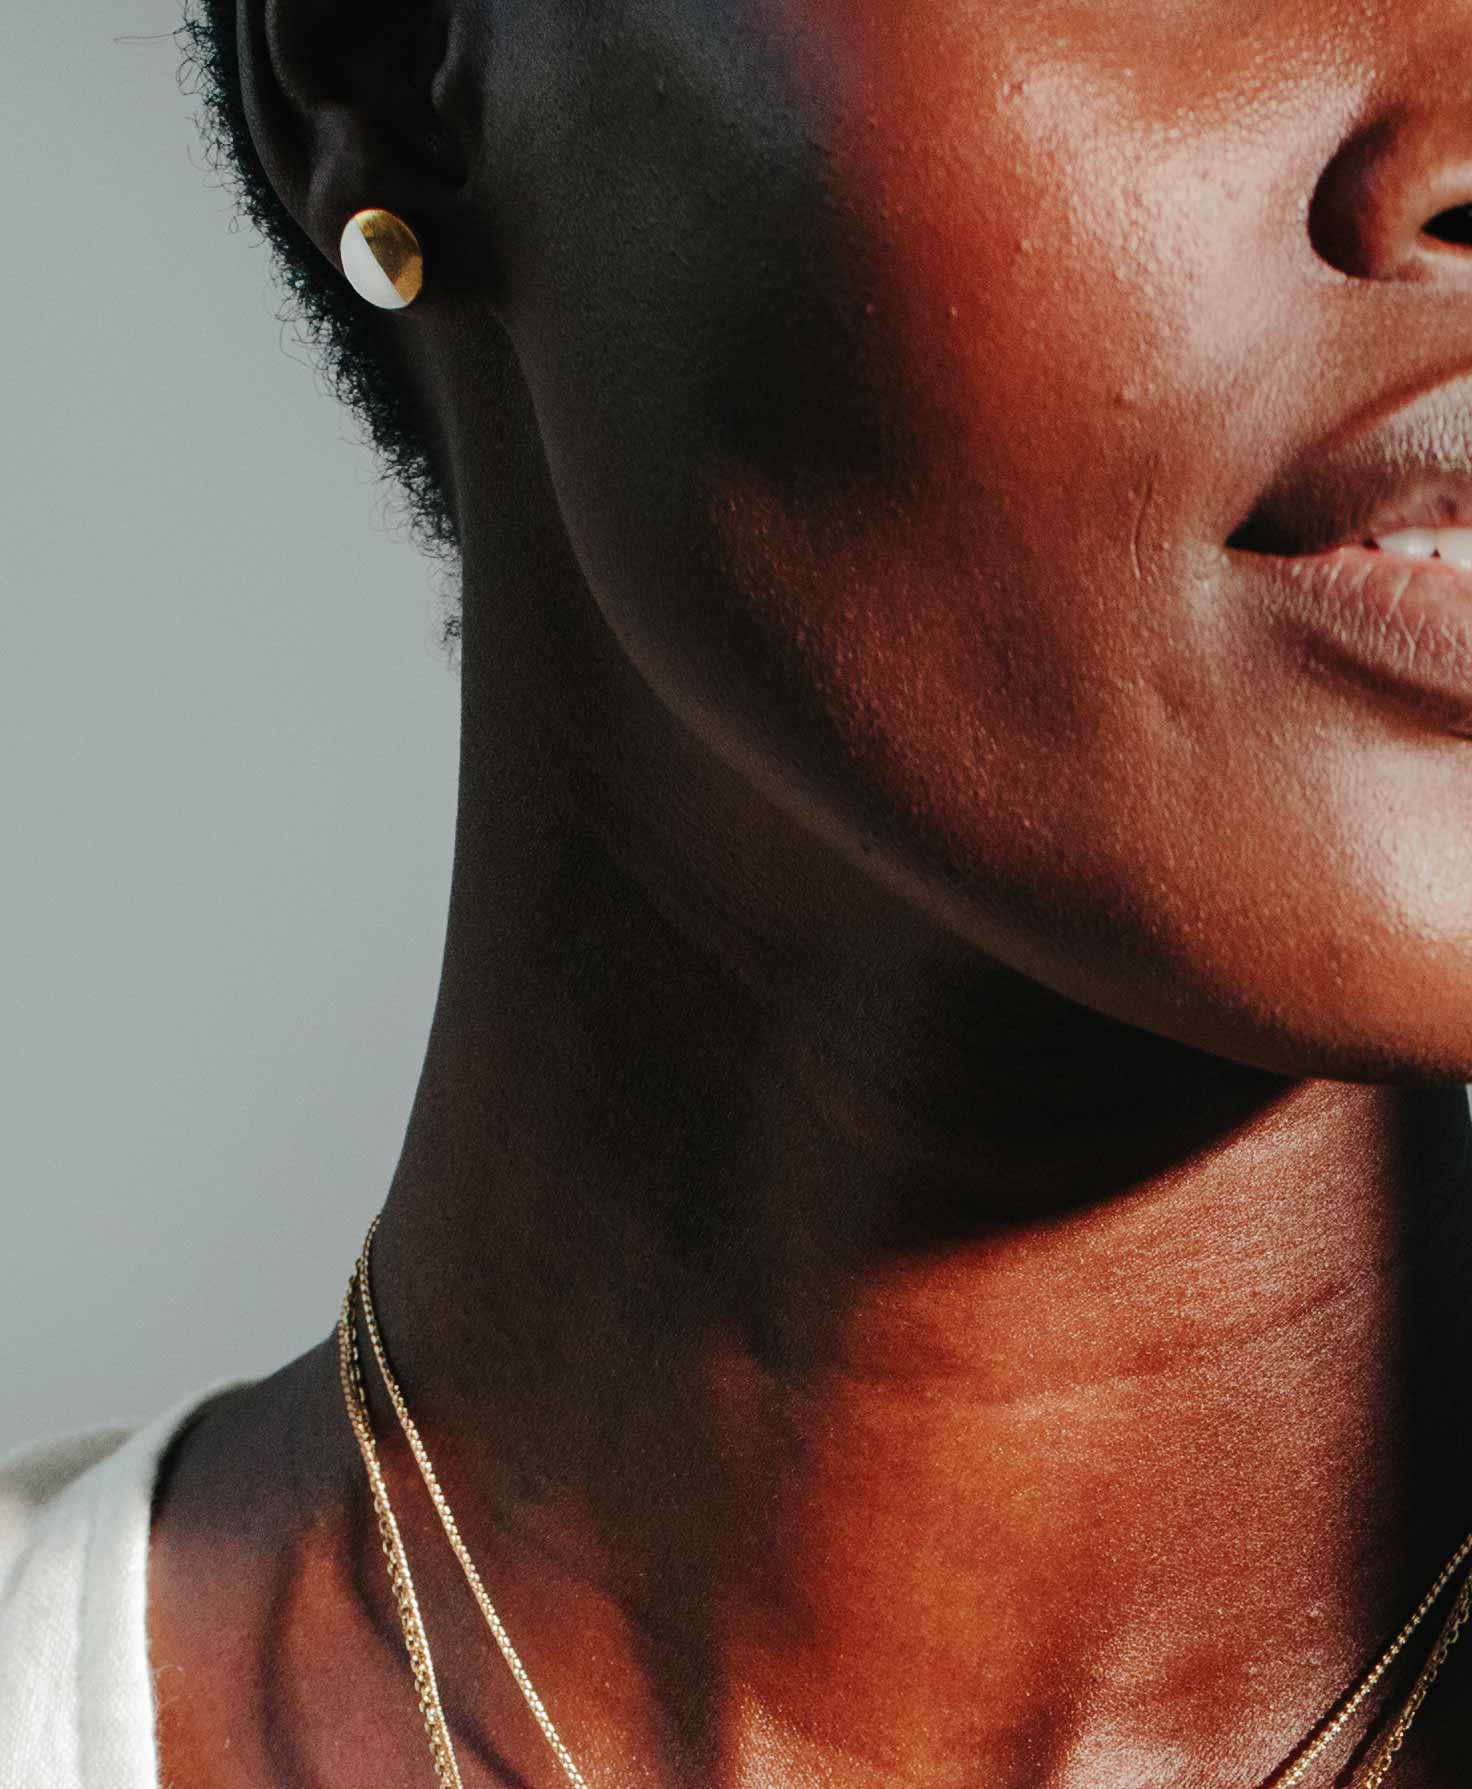 A model wears the Sweet Ceramic Studs, which shine as they catch the light. She also wears two dainty gold necklaces to complete the metallic look.